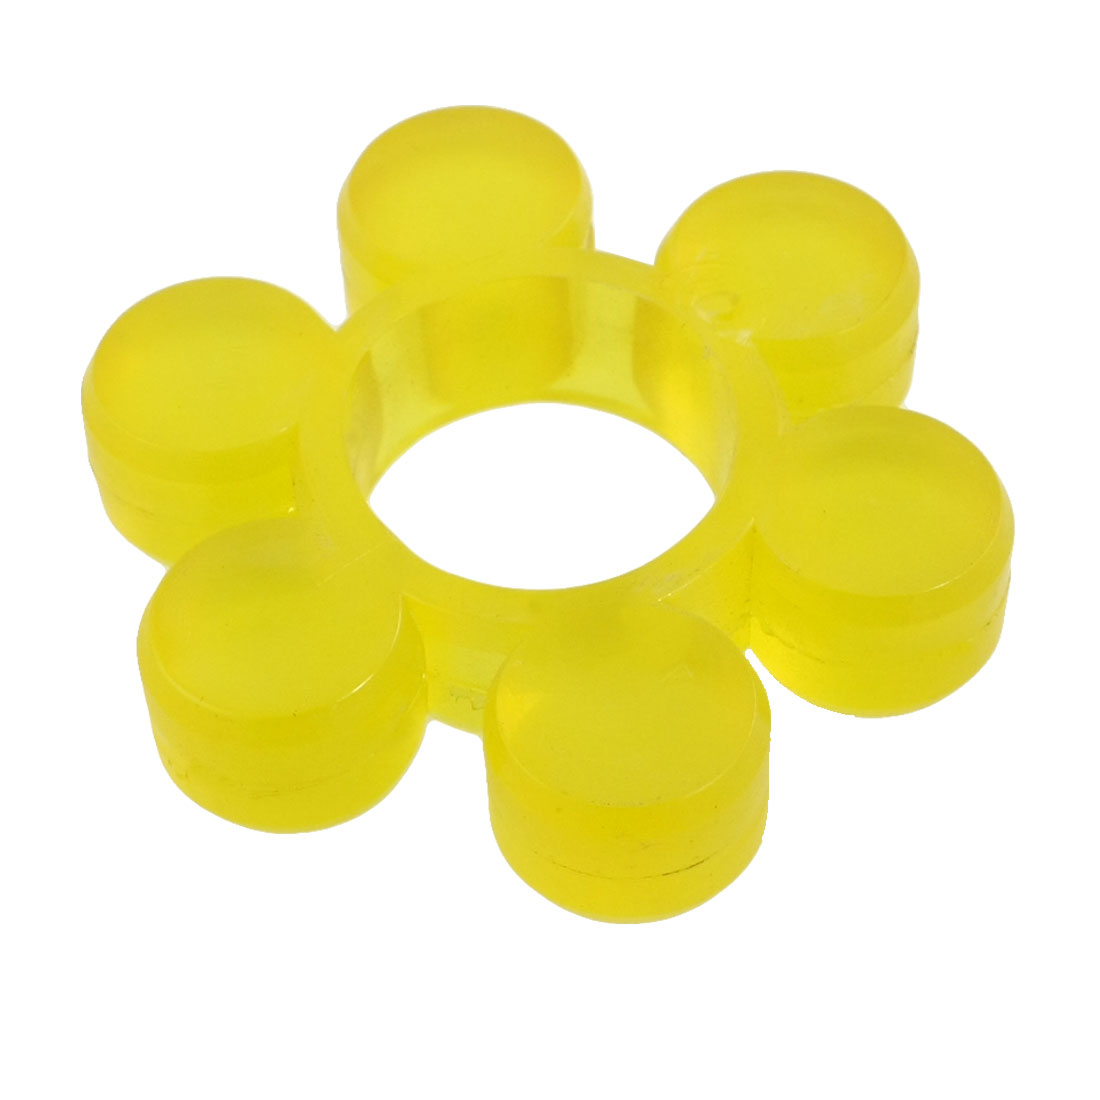 40mm Bore Diameter 6 Cylinder Petal Yellow PU Coupler Damper